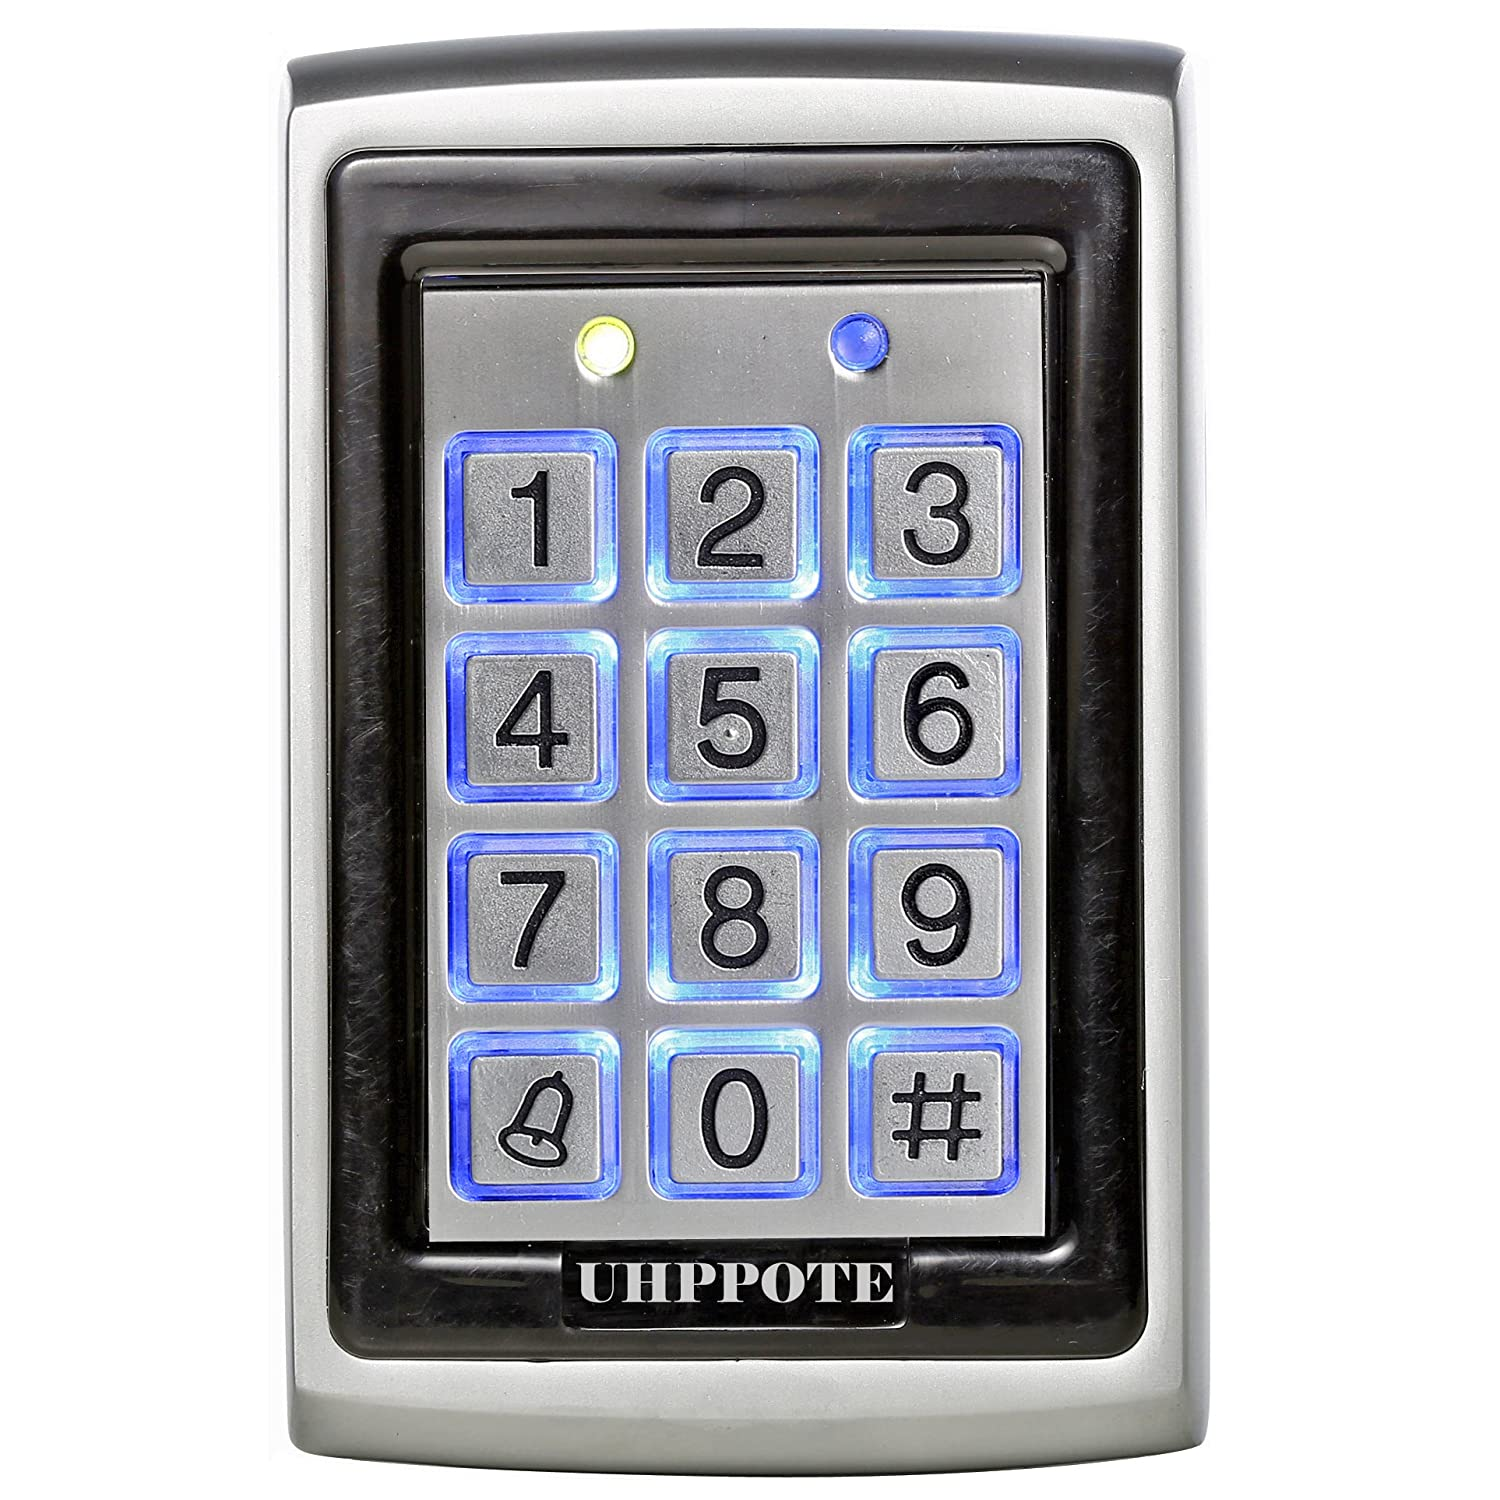 UHPPOTE 125Khz EM-ID Metal Case RFID Access Control Keypad with Back Light Support 500 User UT0212-KA103